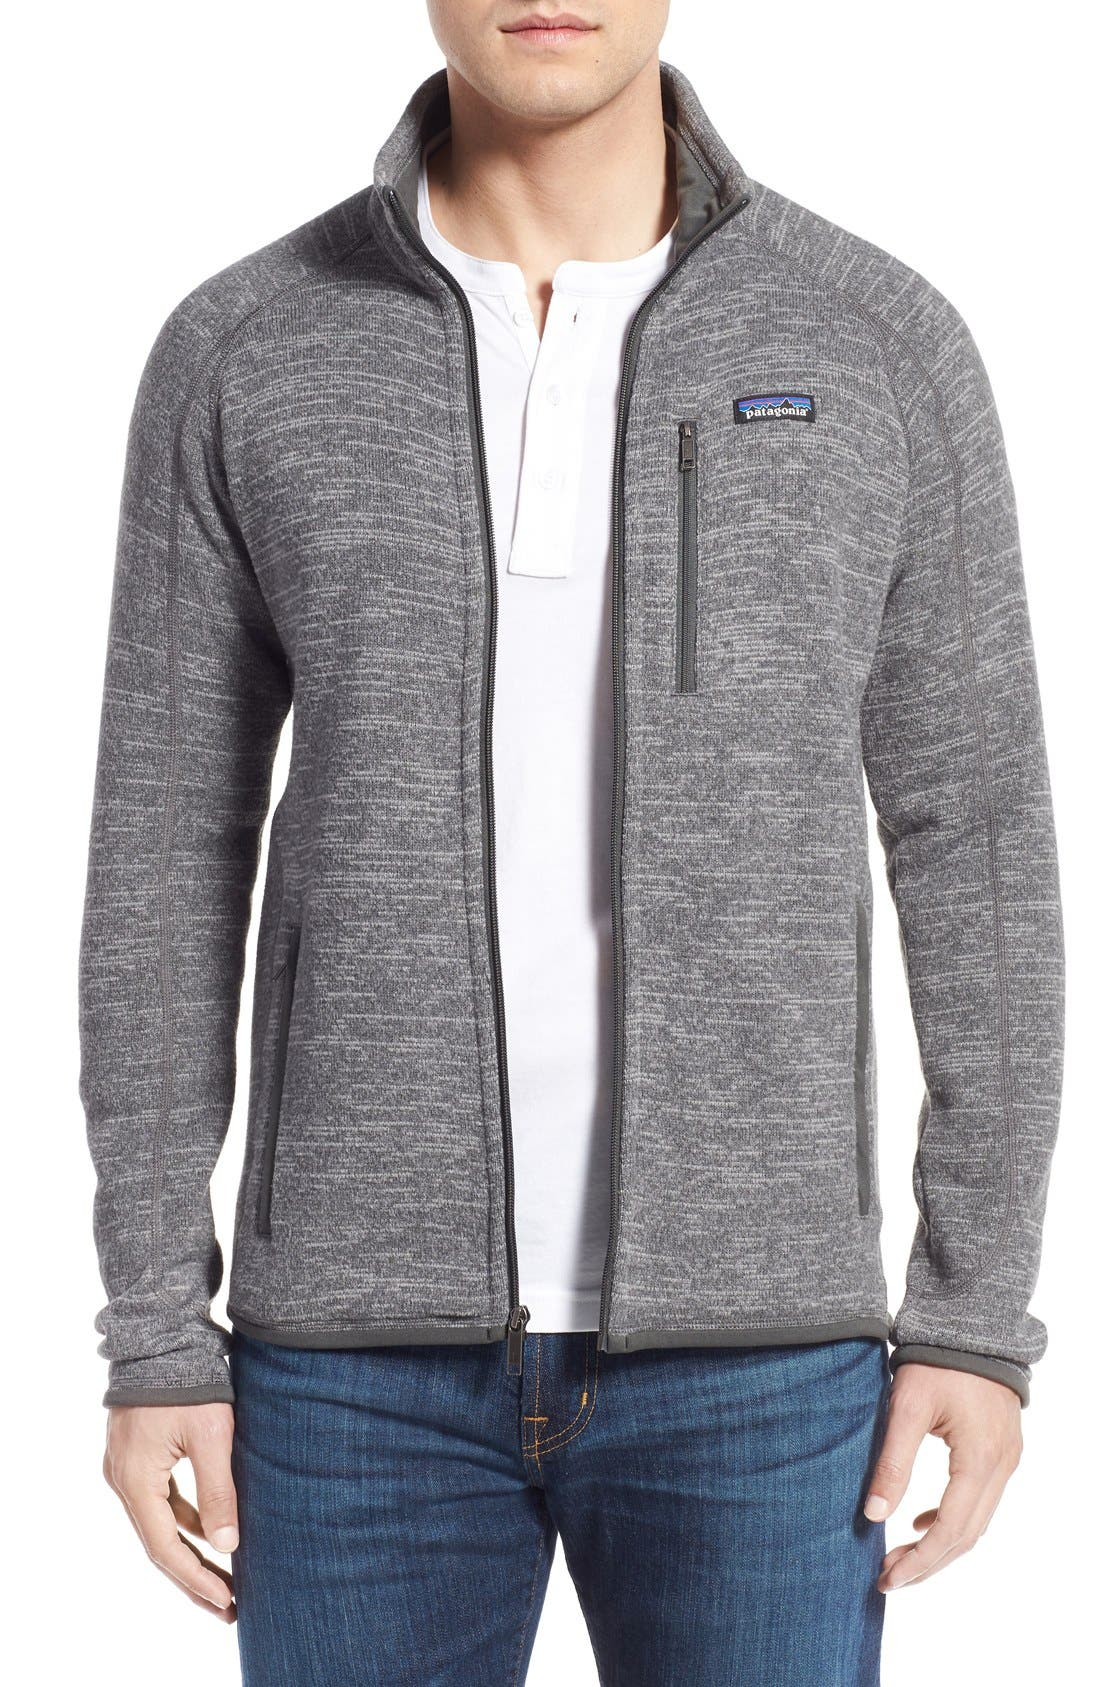 Better Sweater Zip Front Jacket,                             Main thumbnail 1, color,                             NICKEL/ FORGE GREY